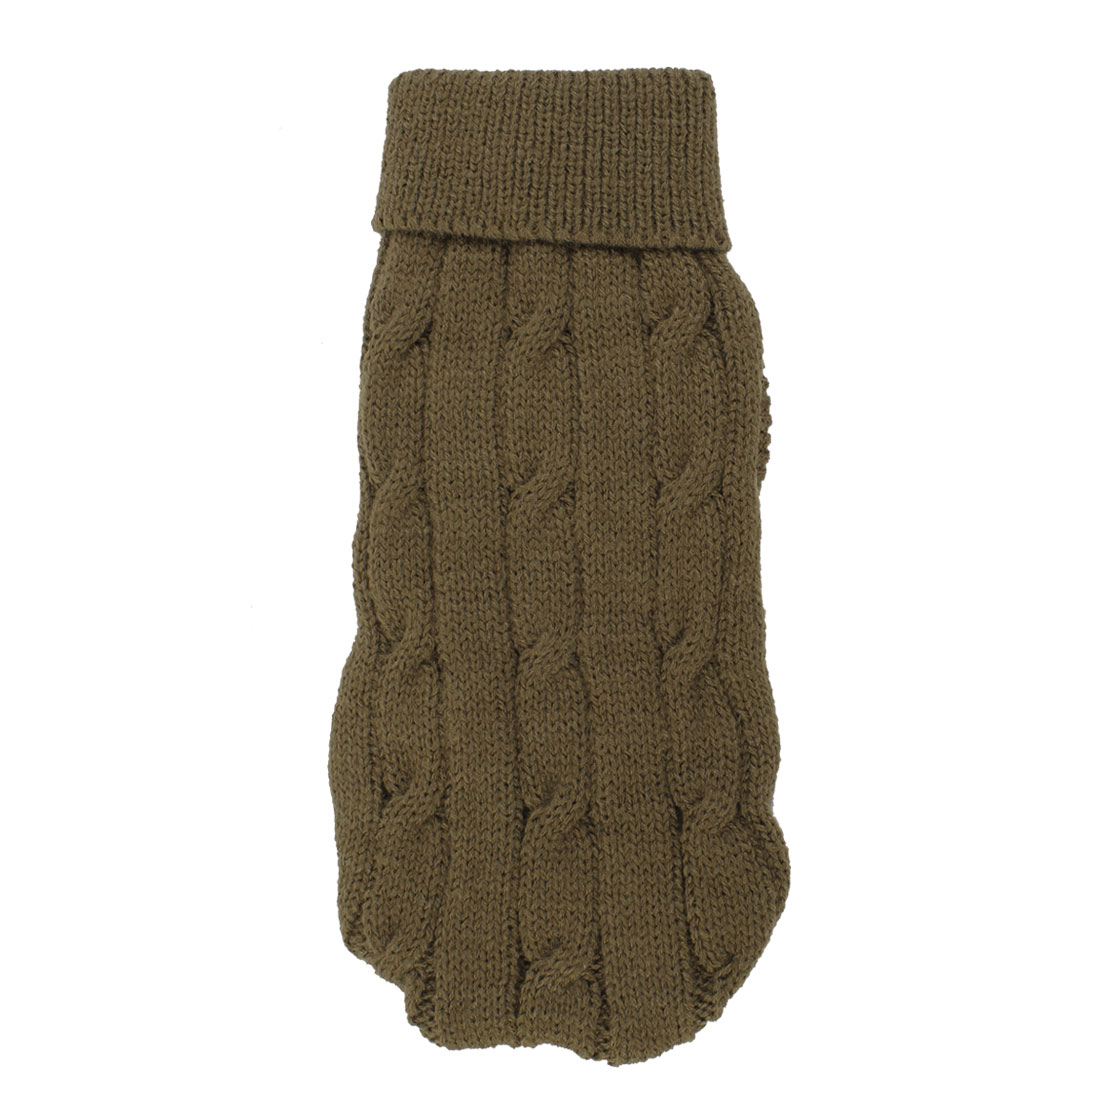 Pet Chihuahua Twisted Knit Ribbed Cuff Turtleneck Apparel Sweater Brown Size 8